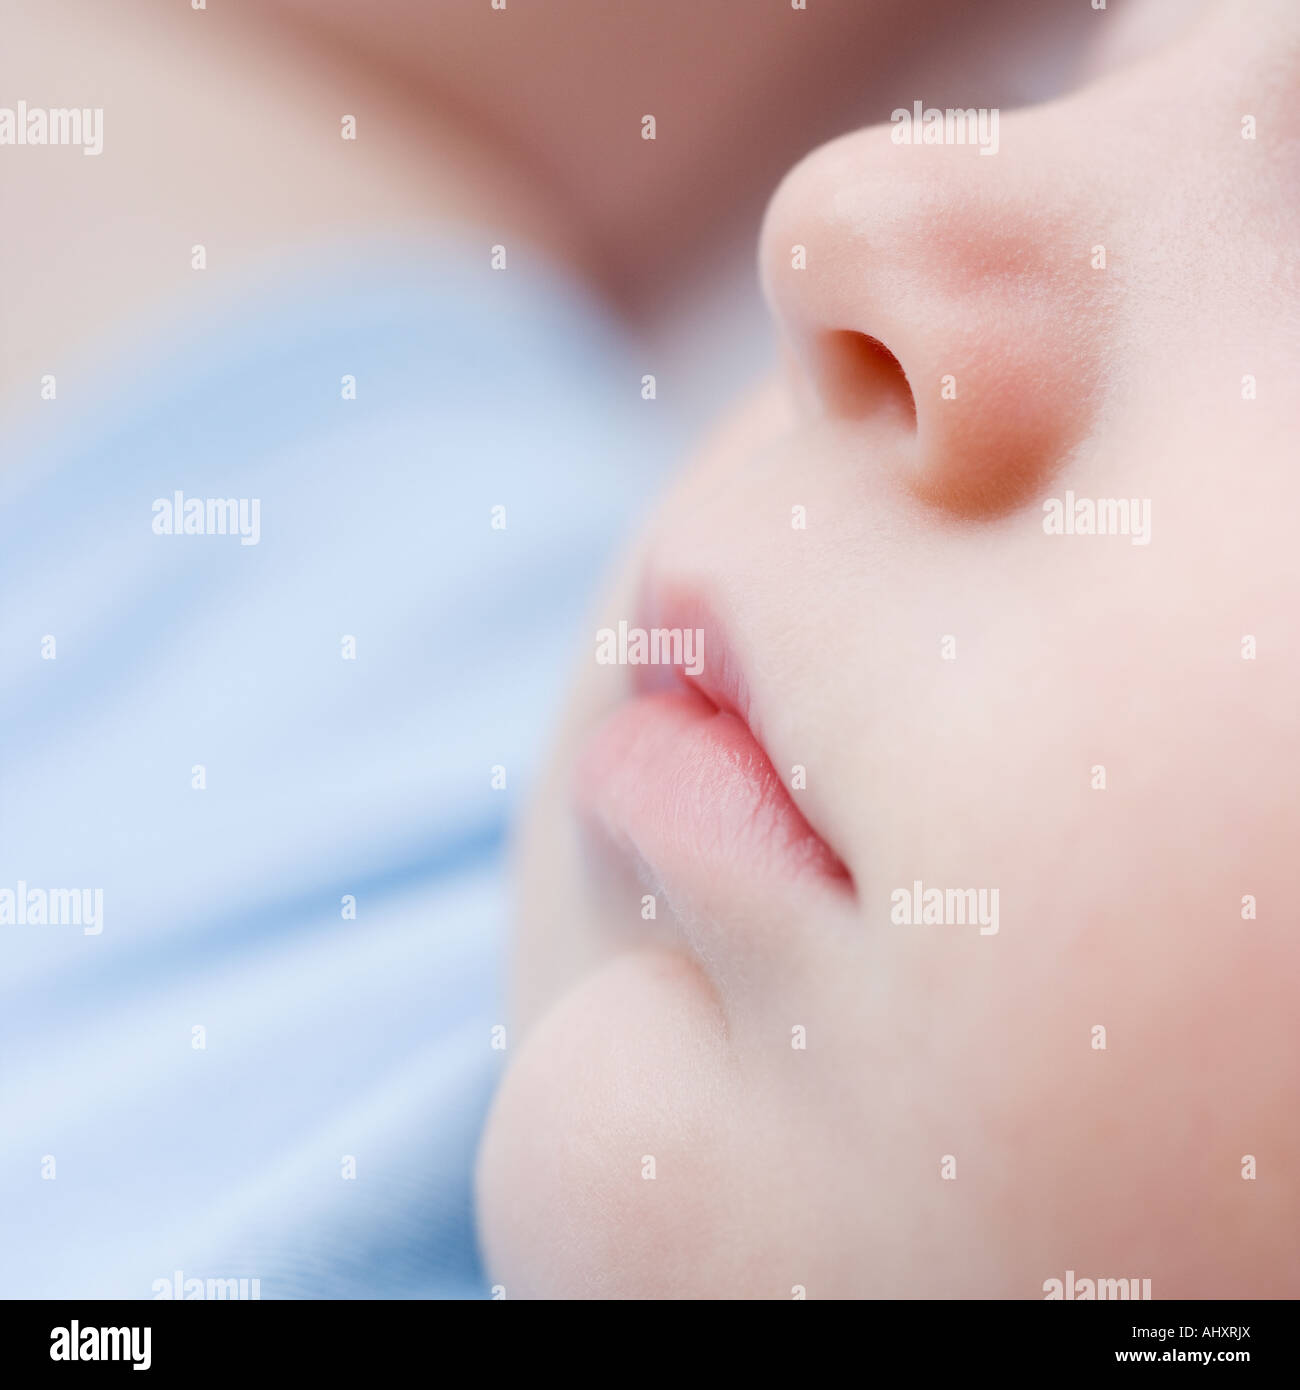 Close up of baby's face - Stock Image